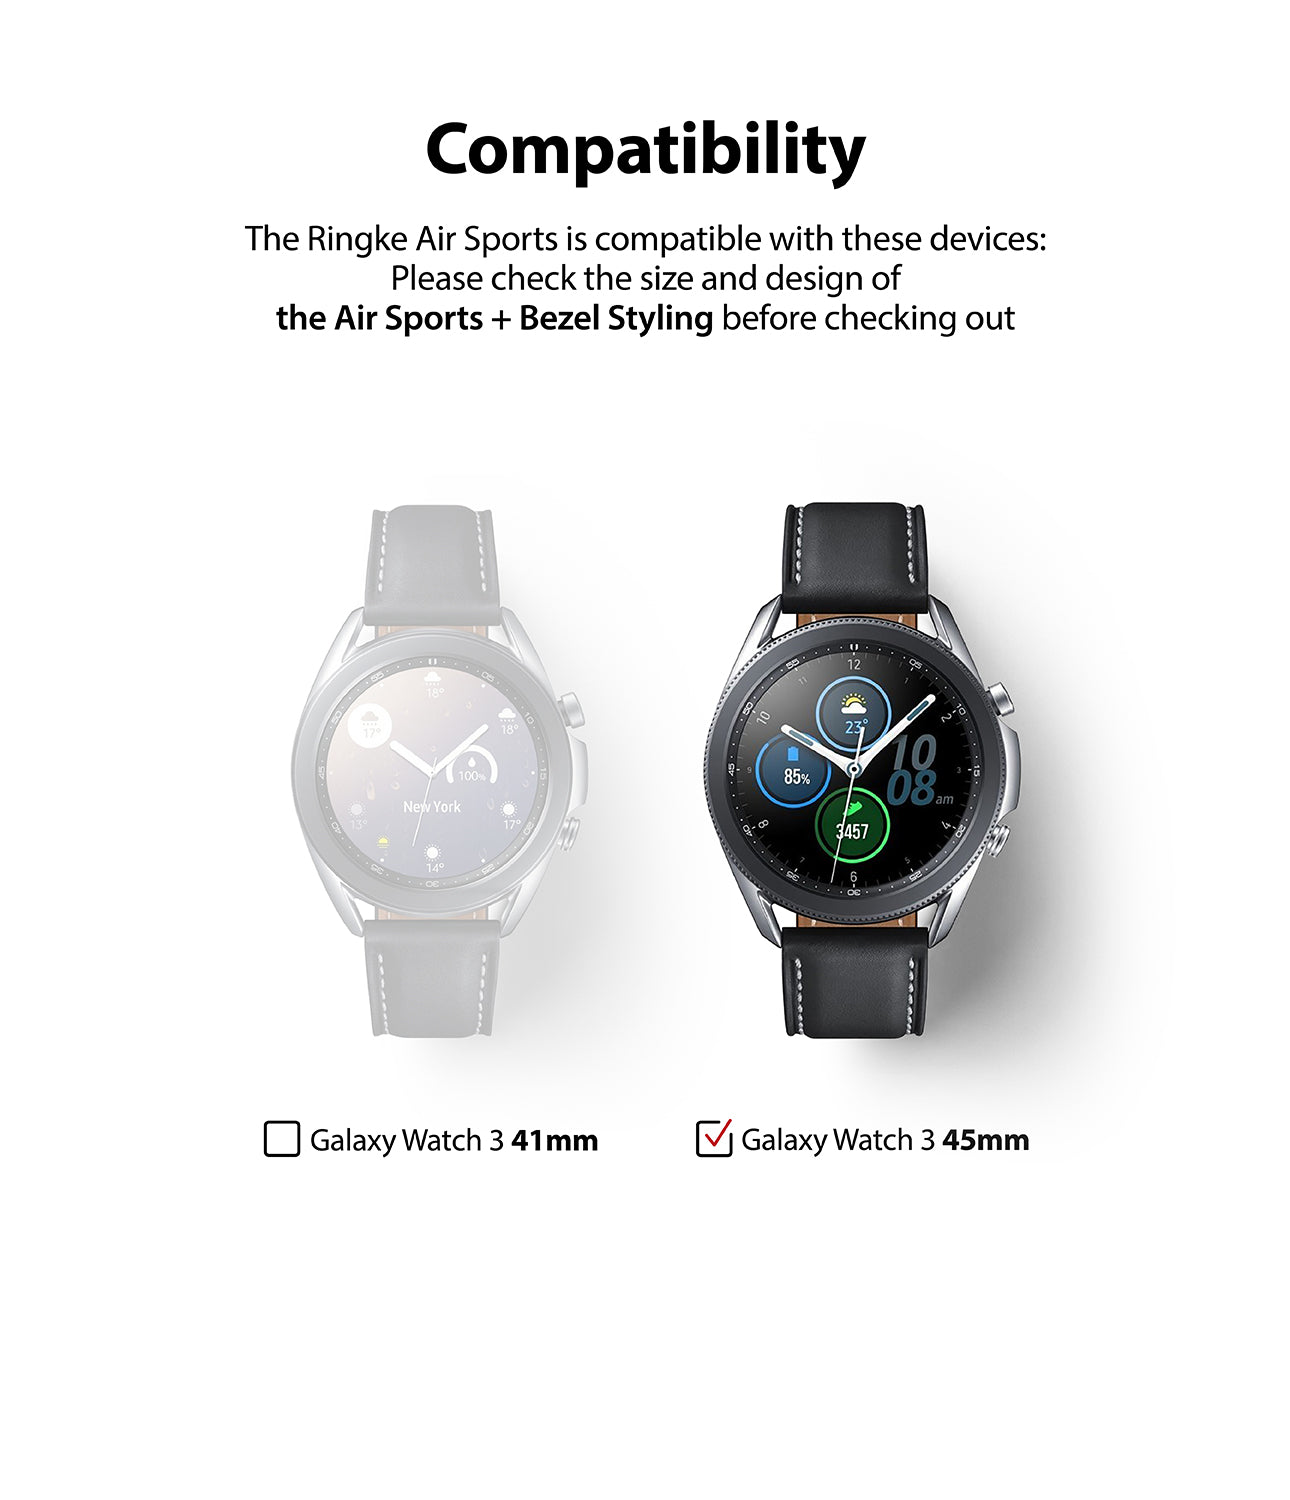 only compatible with galaxy watch 3 45mm